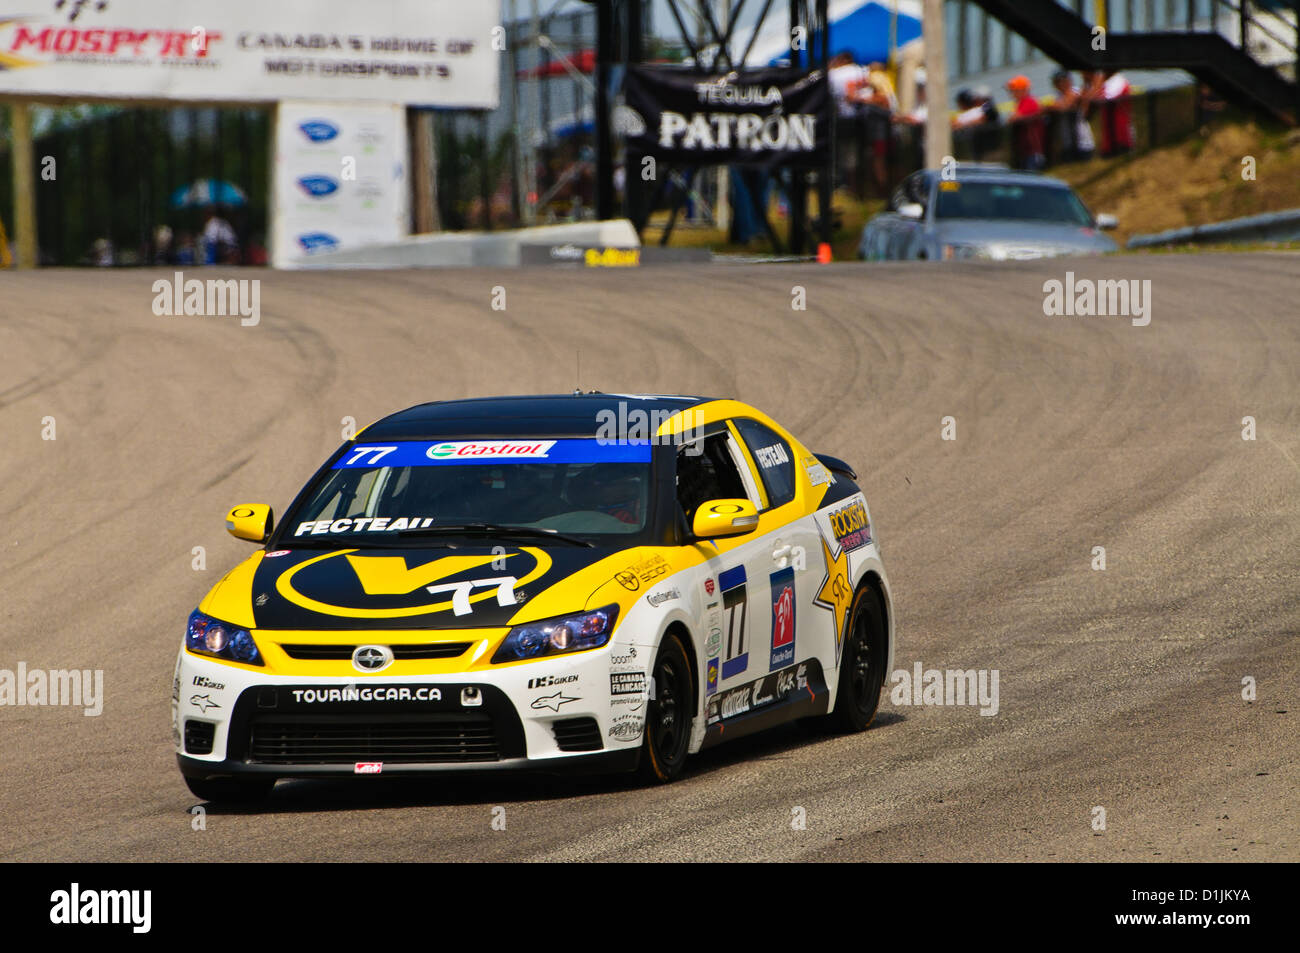 Scion tC competes in the  CTCC Canadian Touring Car Championship at the 2011 Mobile-1 Grand Prix Mosport Stock Photo